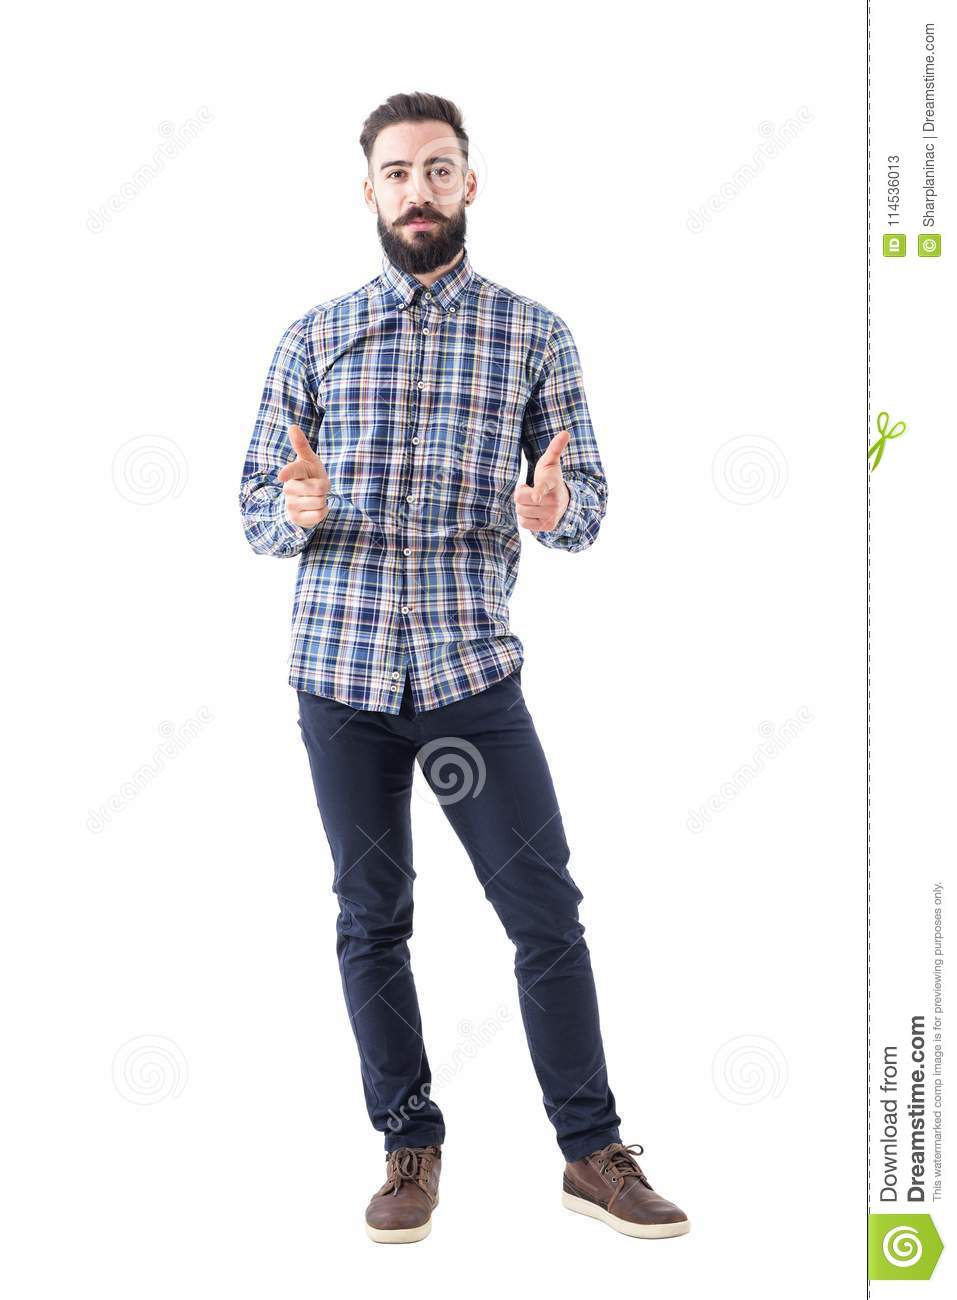 Bearded business man in plaid shirt pointing with amused expression looking at camera